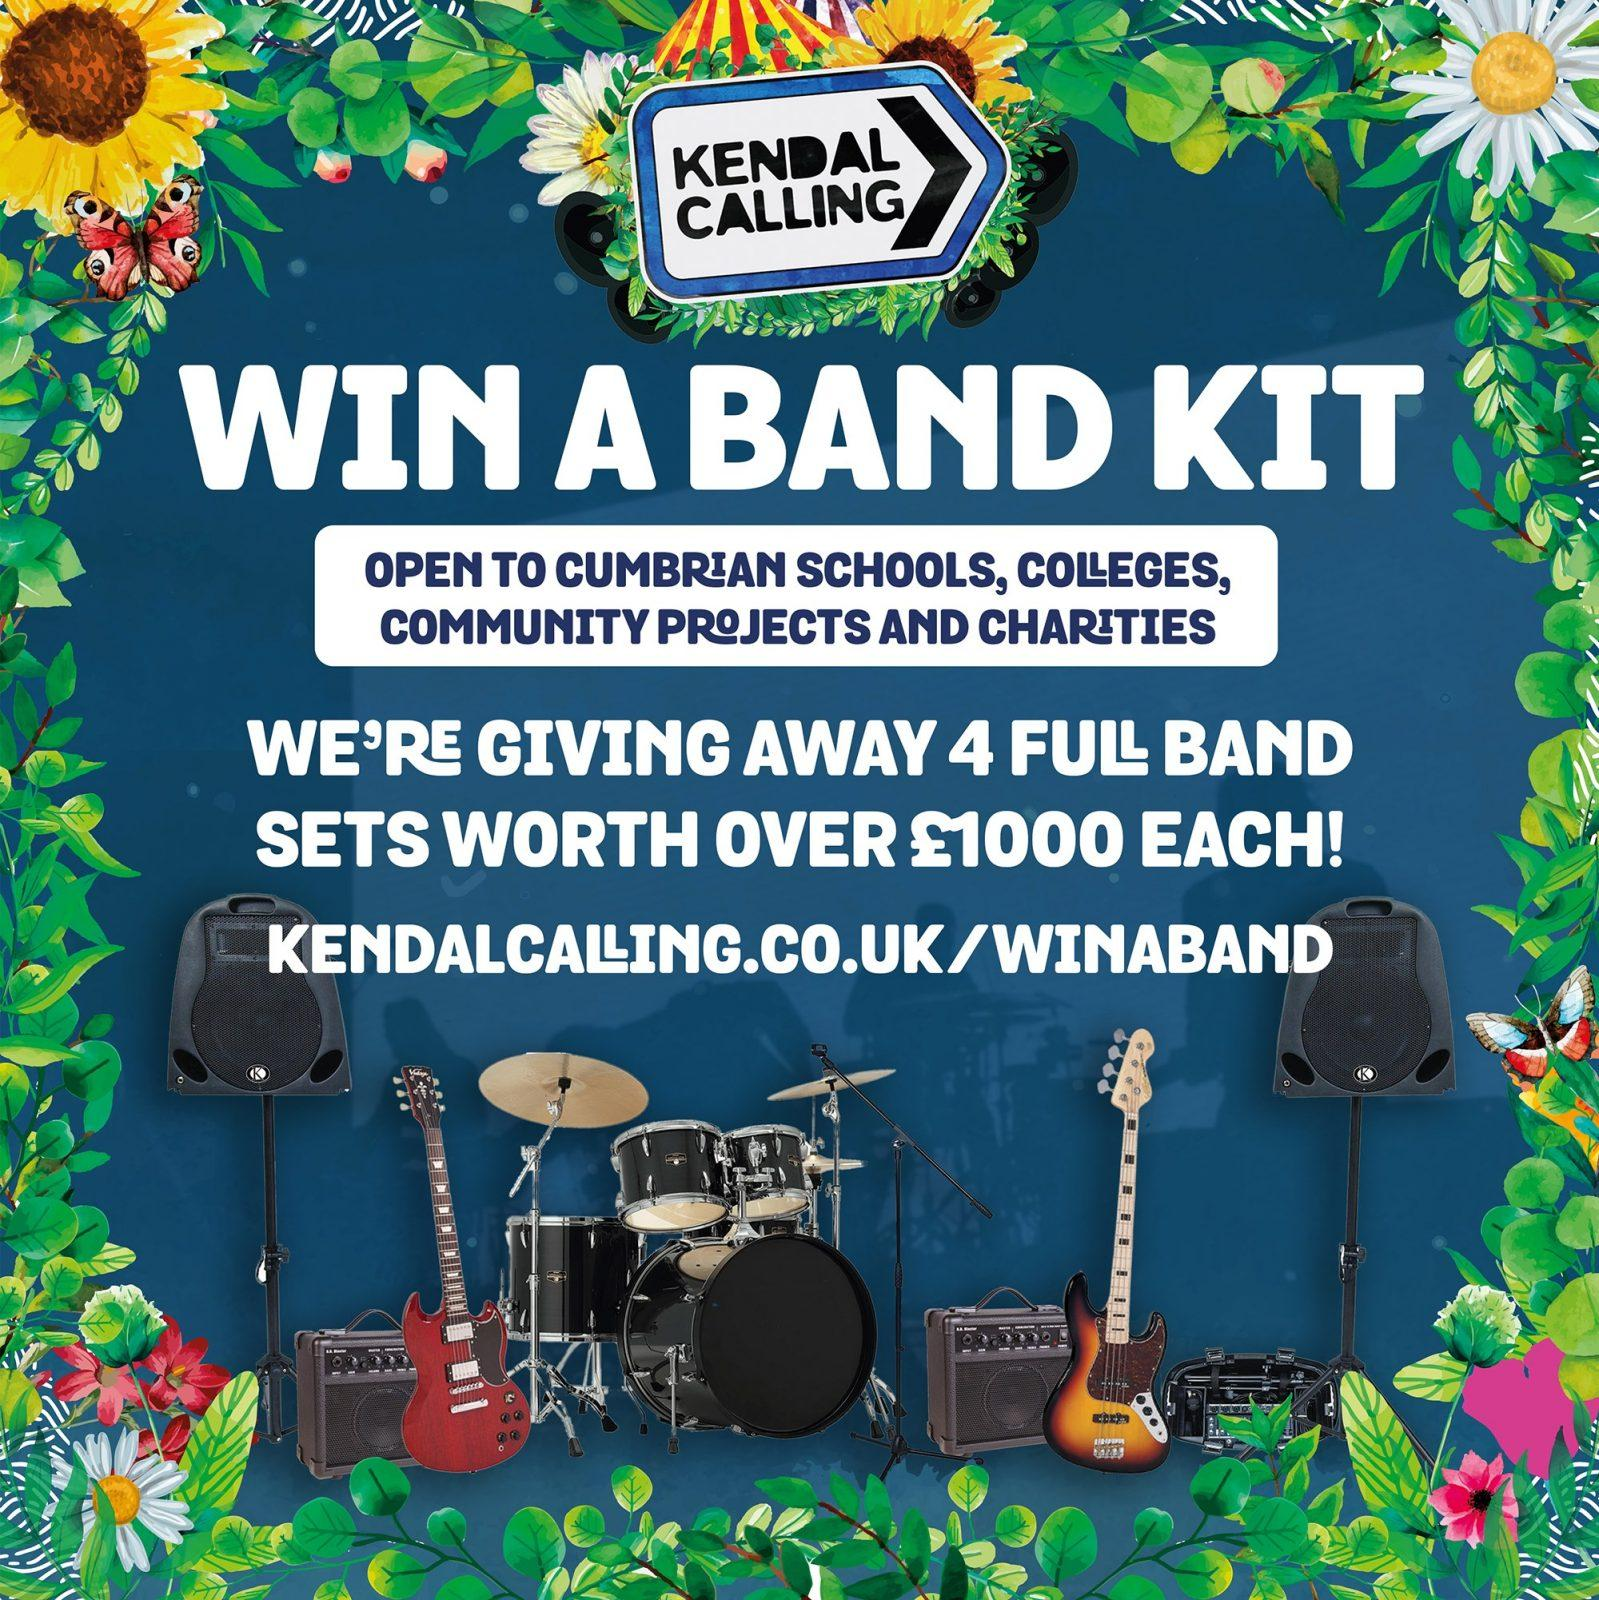 Our Win A Band Kit competition is live! We're giving schools, colleges, communit...